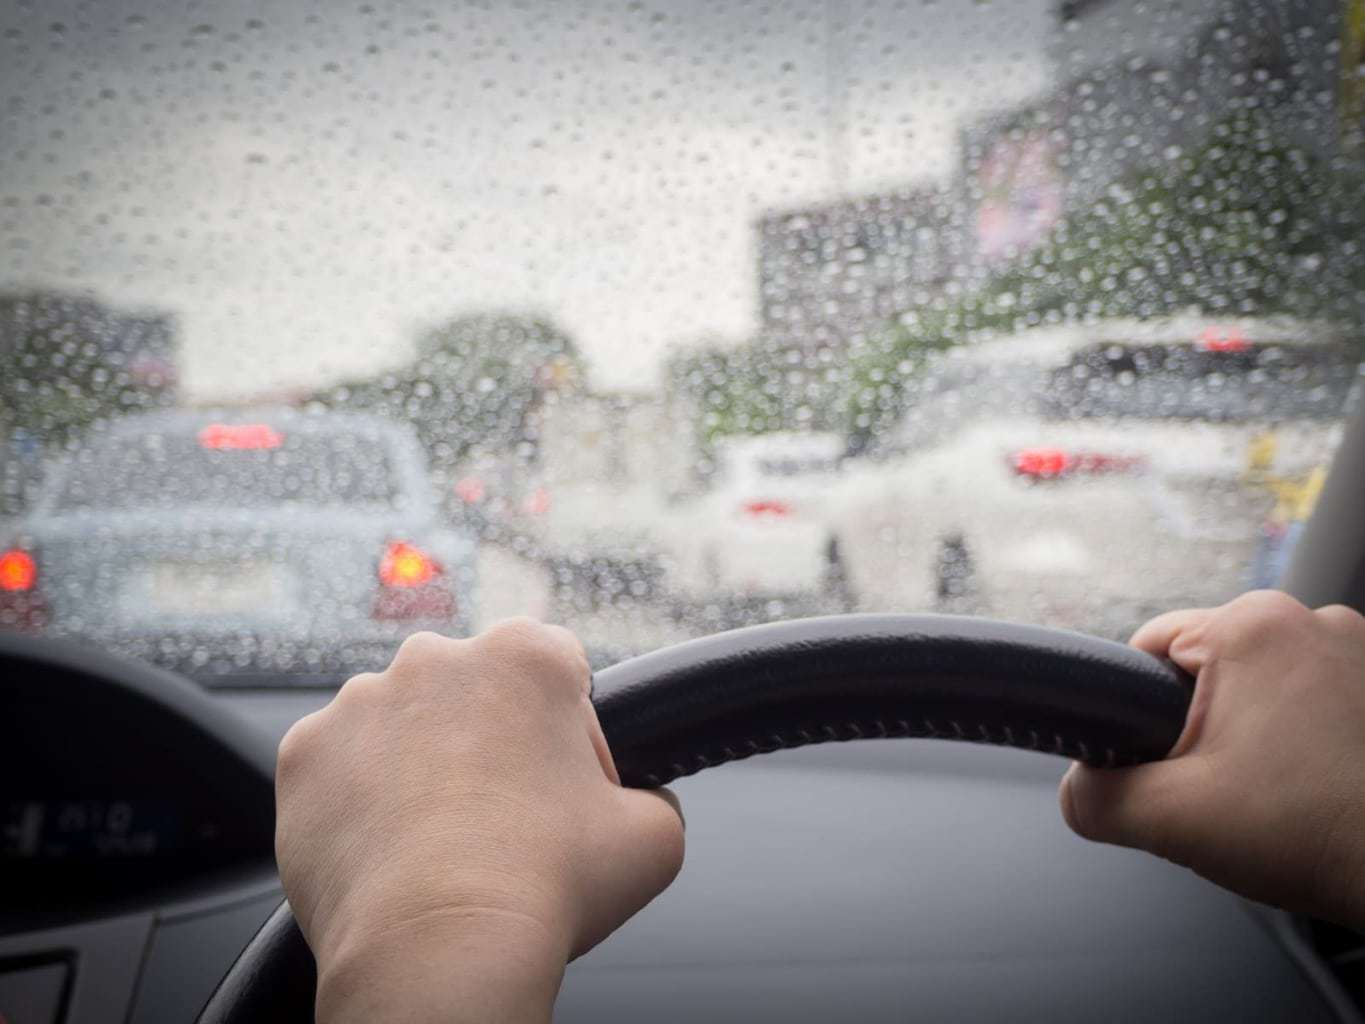 teen safety driving tips, driving in the rain, Driving Tips For Teenage Drivers